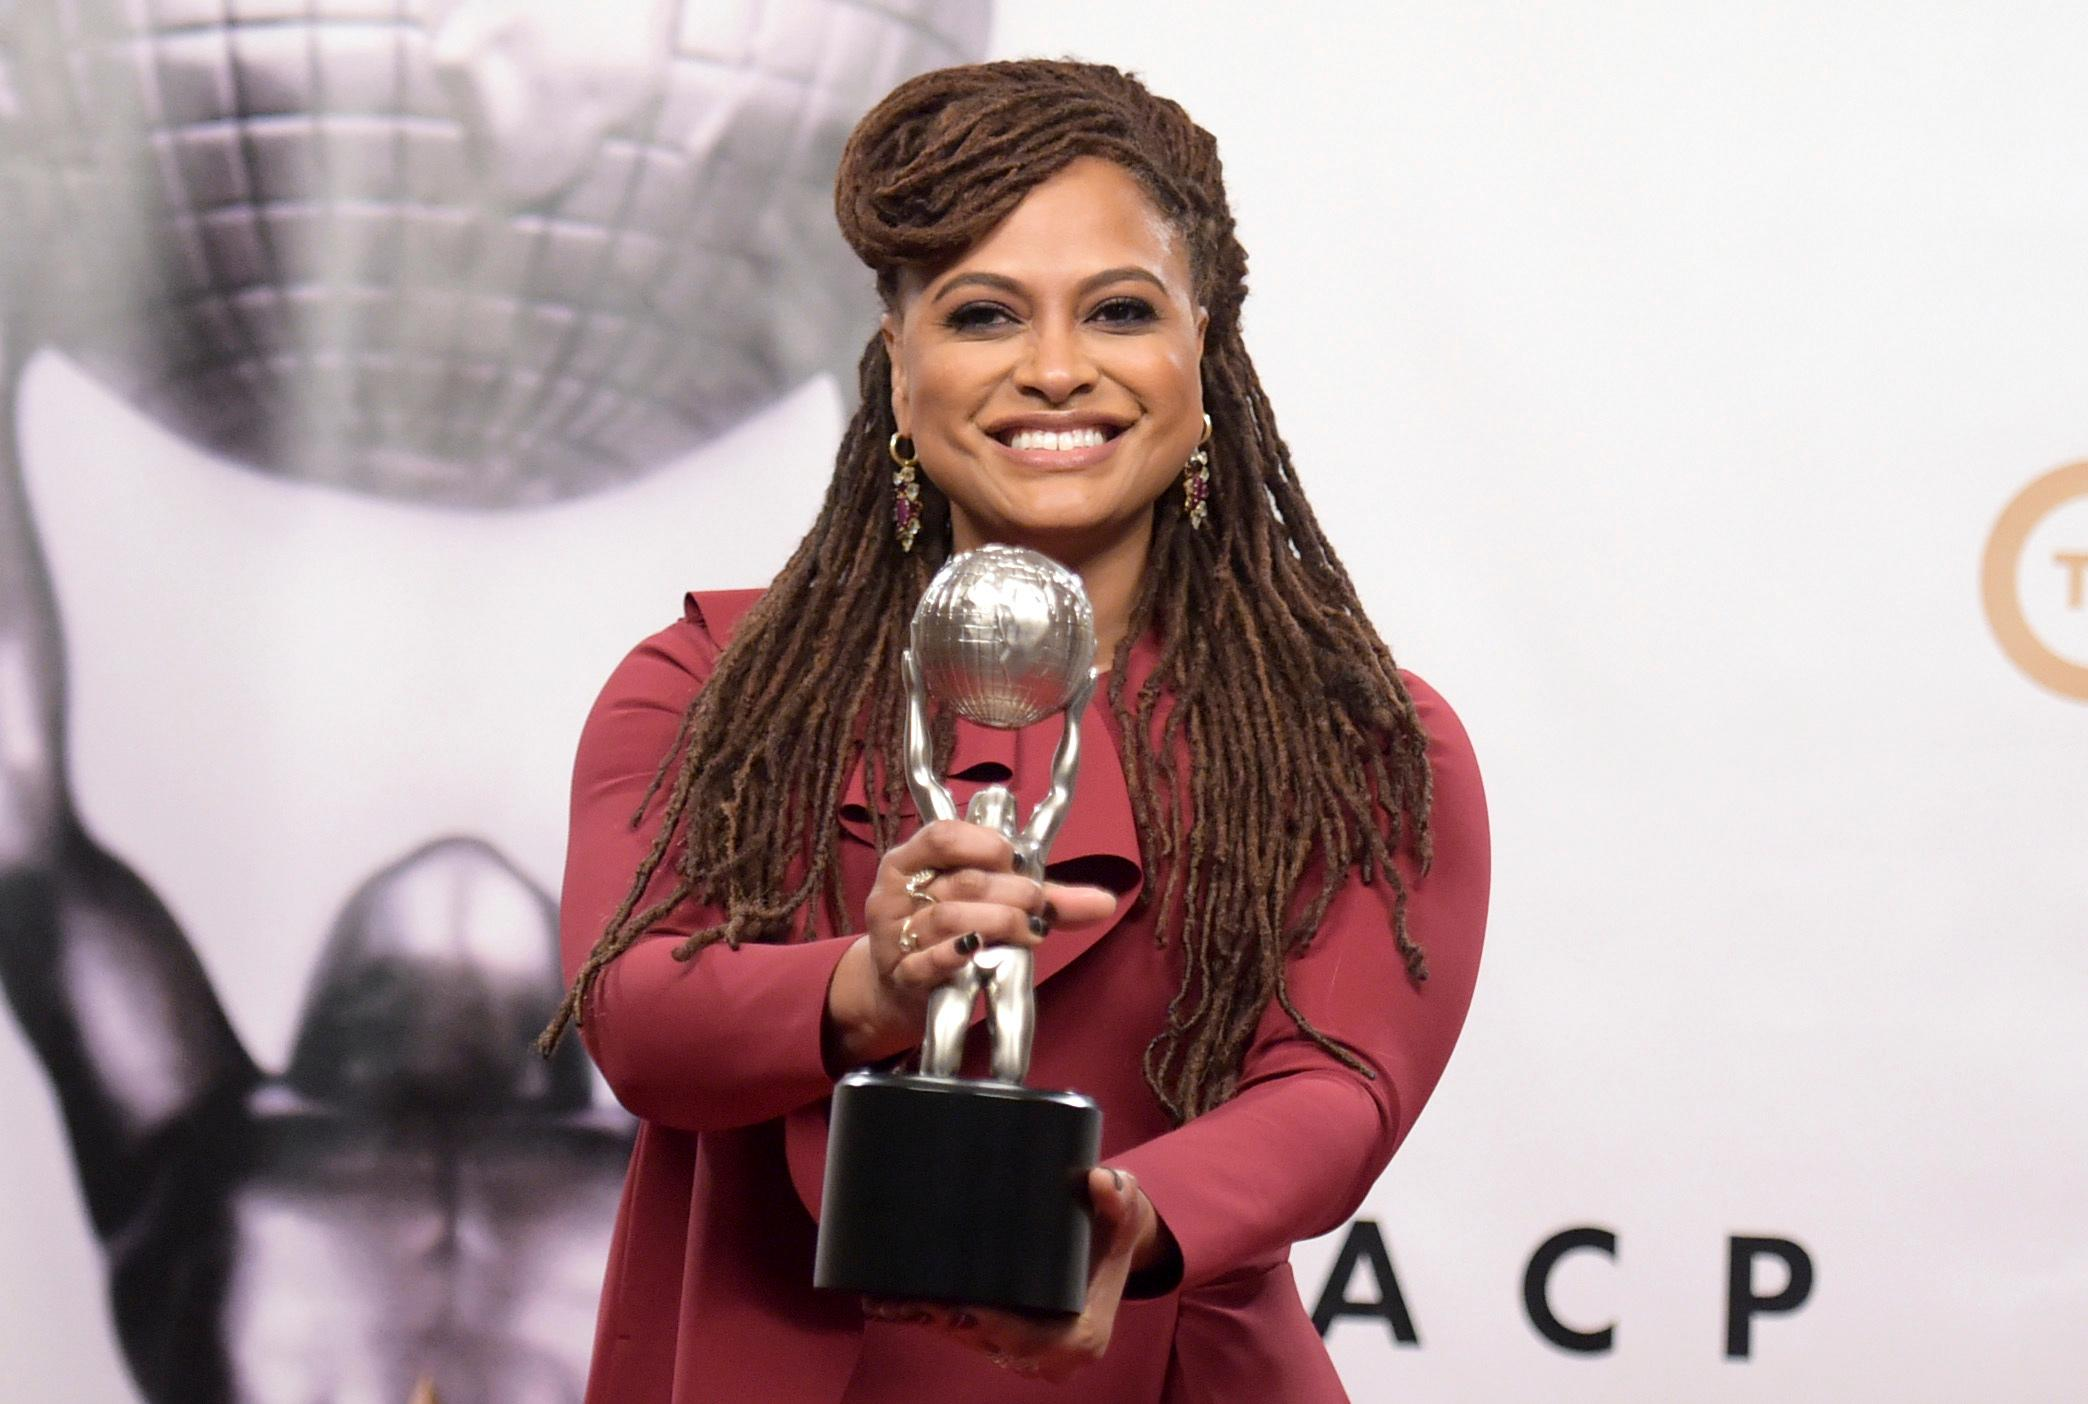 Ava DuVernay poses in the press room with the award for the entertainer of the year at the 49th annual NAACP Image Awards at the Pasadena Civic Auditorium on Monday, Jan. 15, 2018, in Pasadena, Calif. (Photo by Richard Shotwell/Invision/AP)